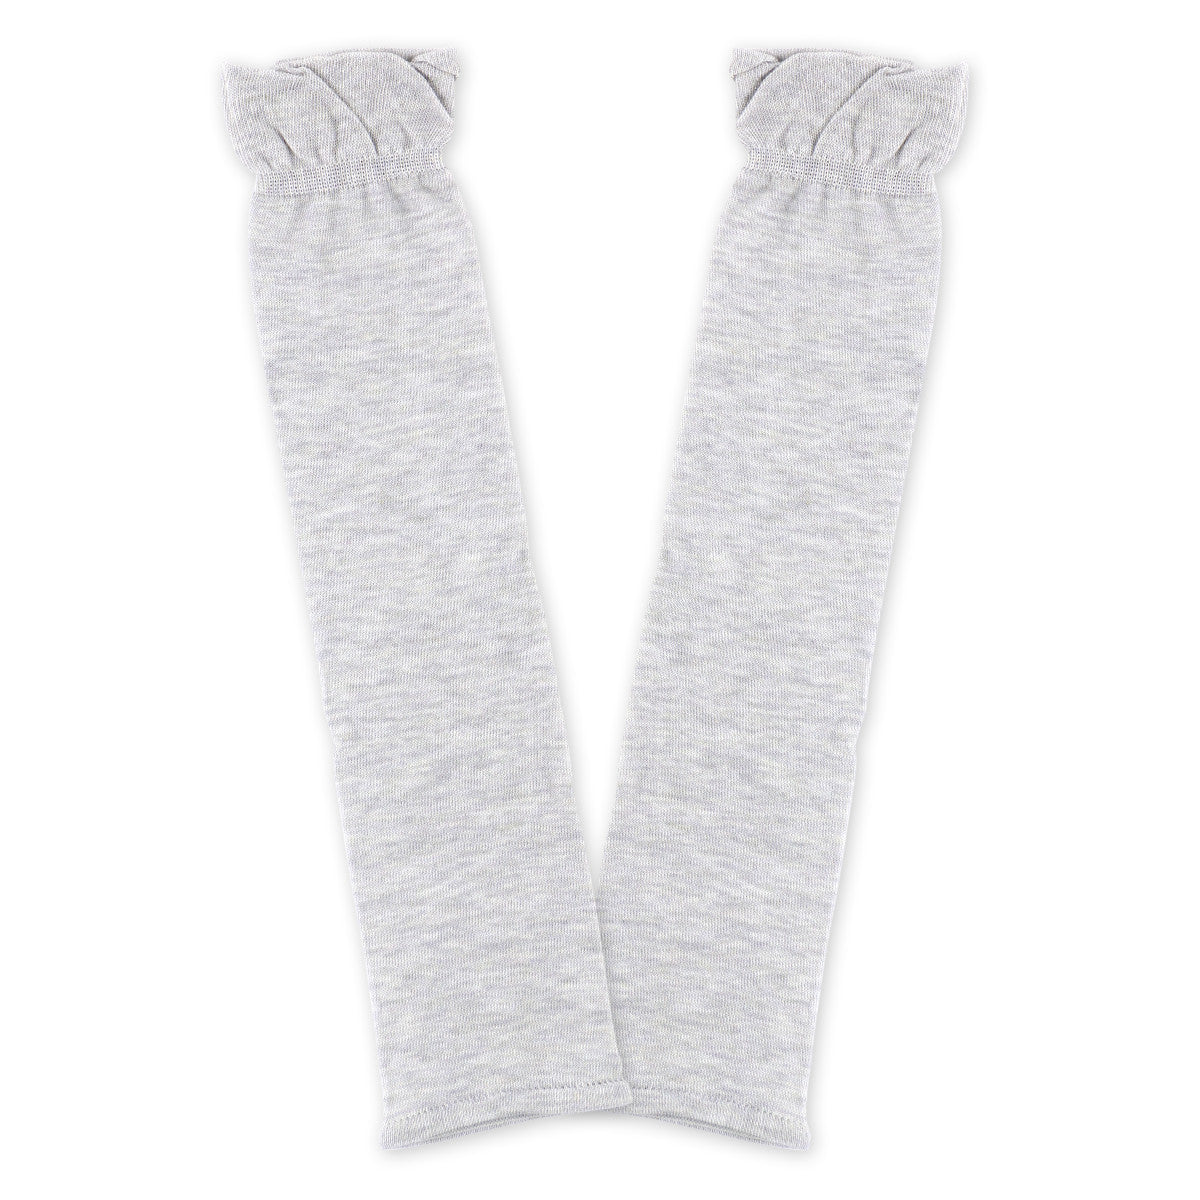 Prevent-the-chill Legwarmers | Grey - CHERRYSTONE